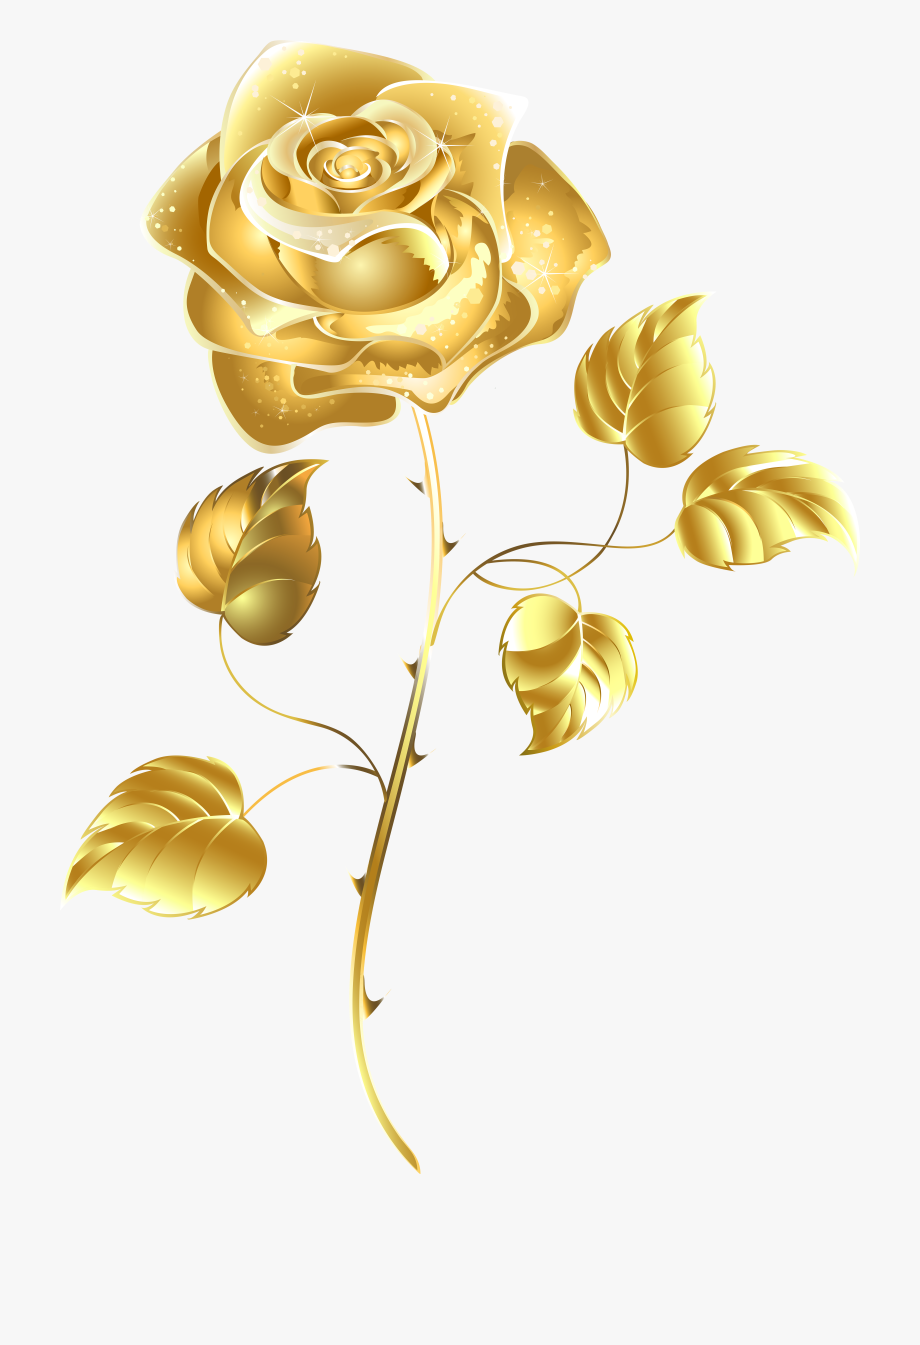 Crown transparent background flower. Clipart rose rose gold